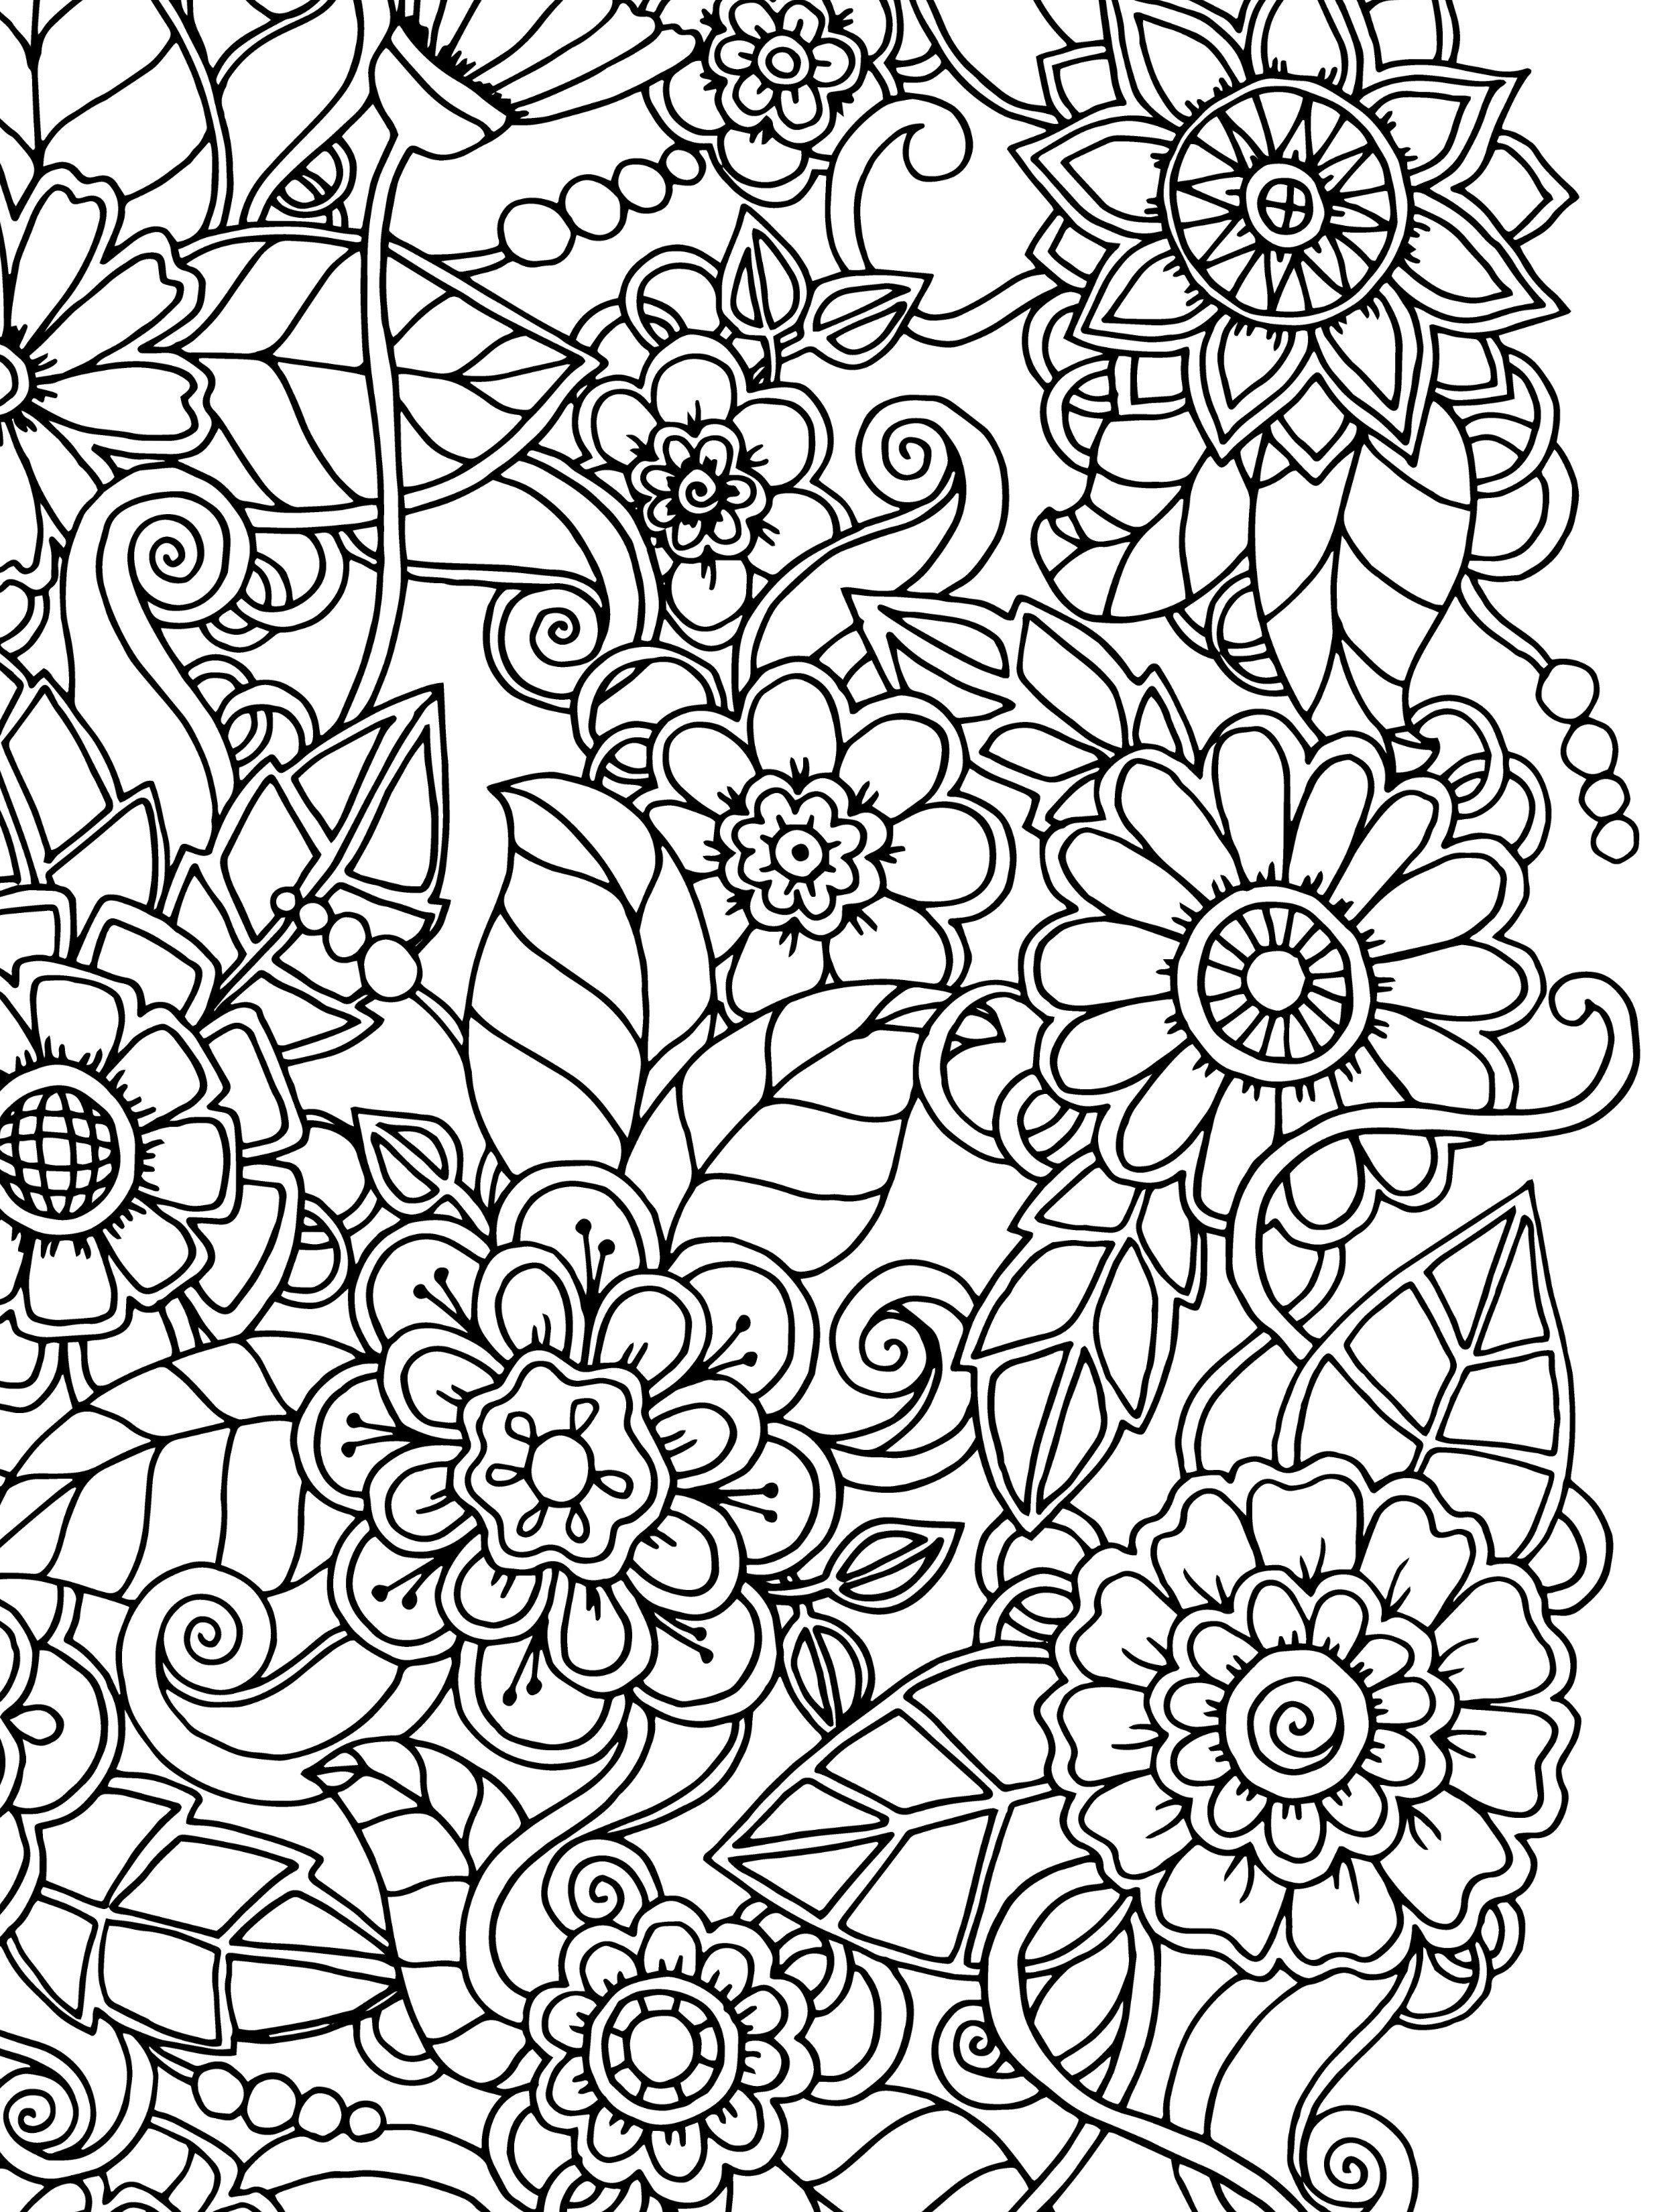 15 CRAZY Busy Coloring Pages for Adults Crazy busy